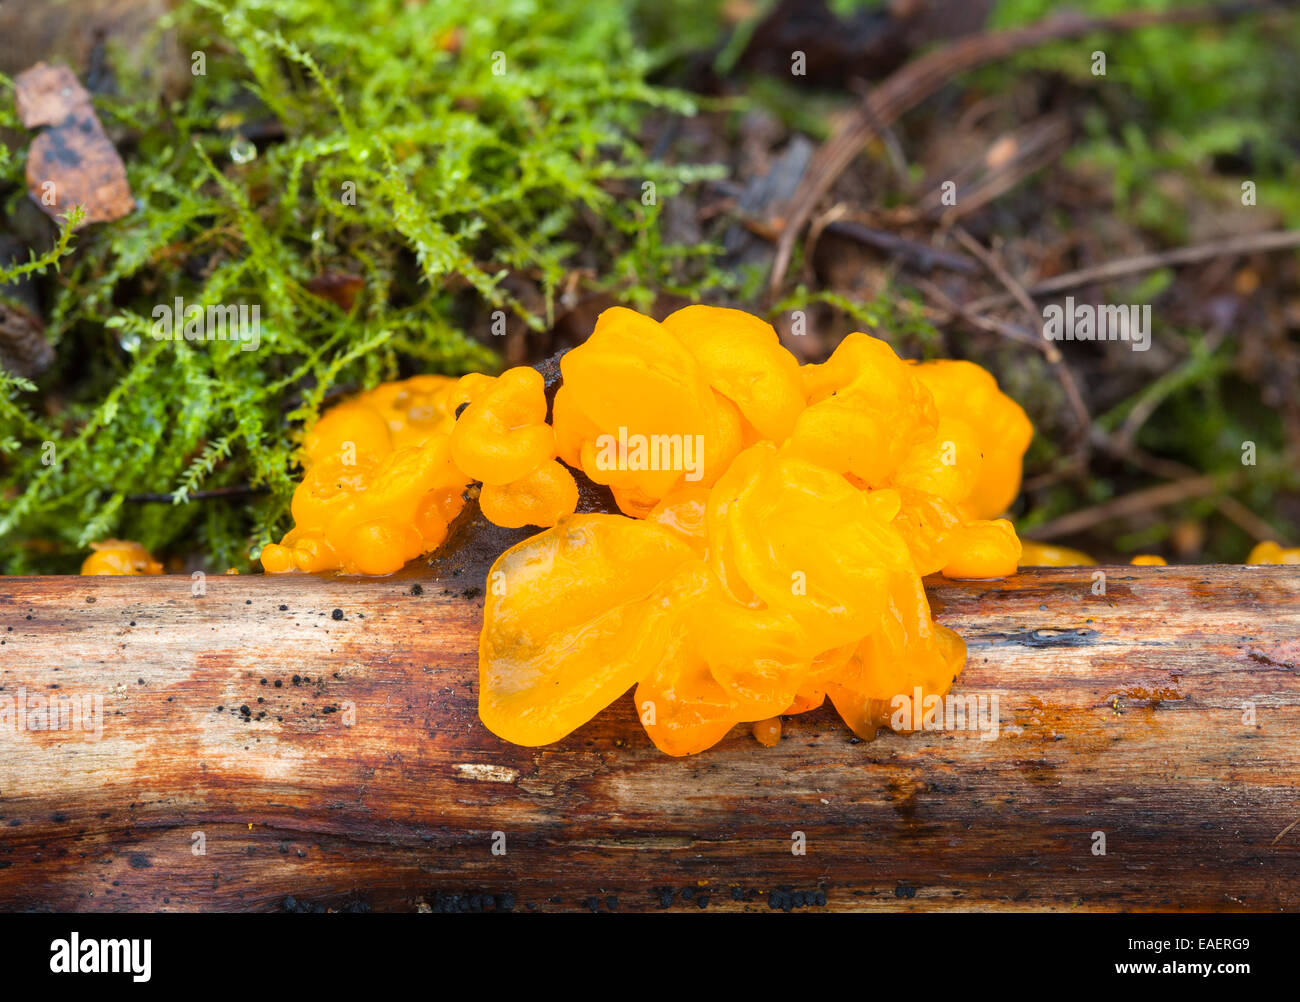 Witches' butter mushroom - Stock Image